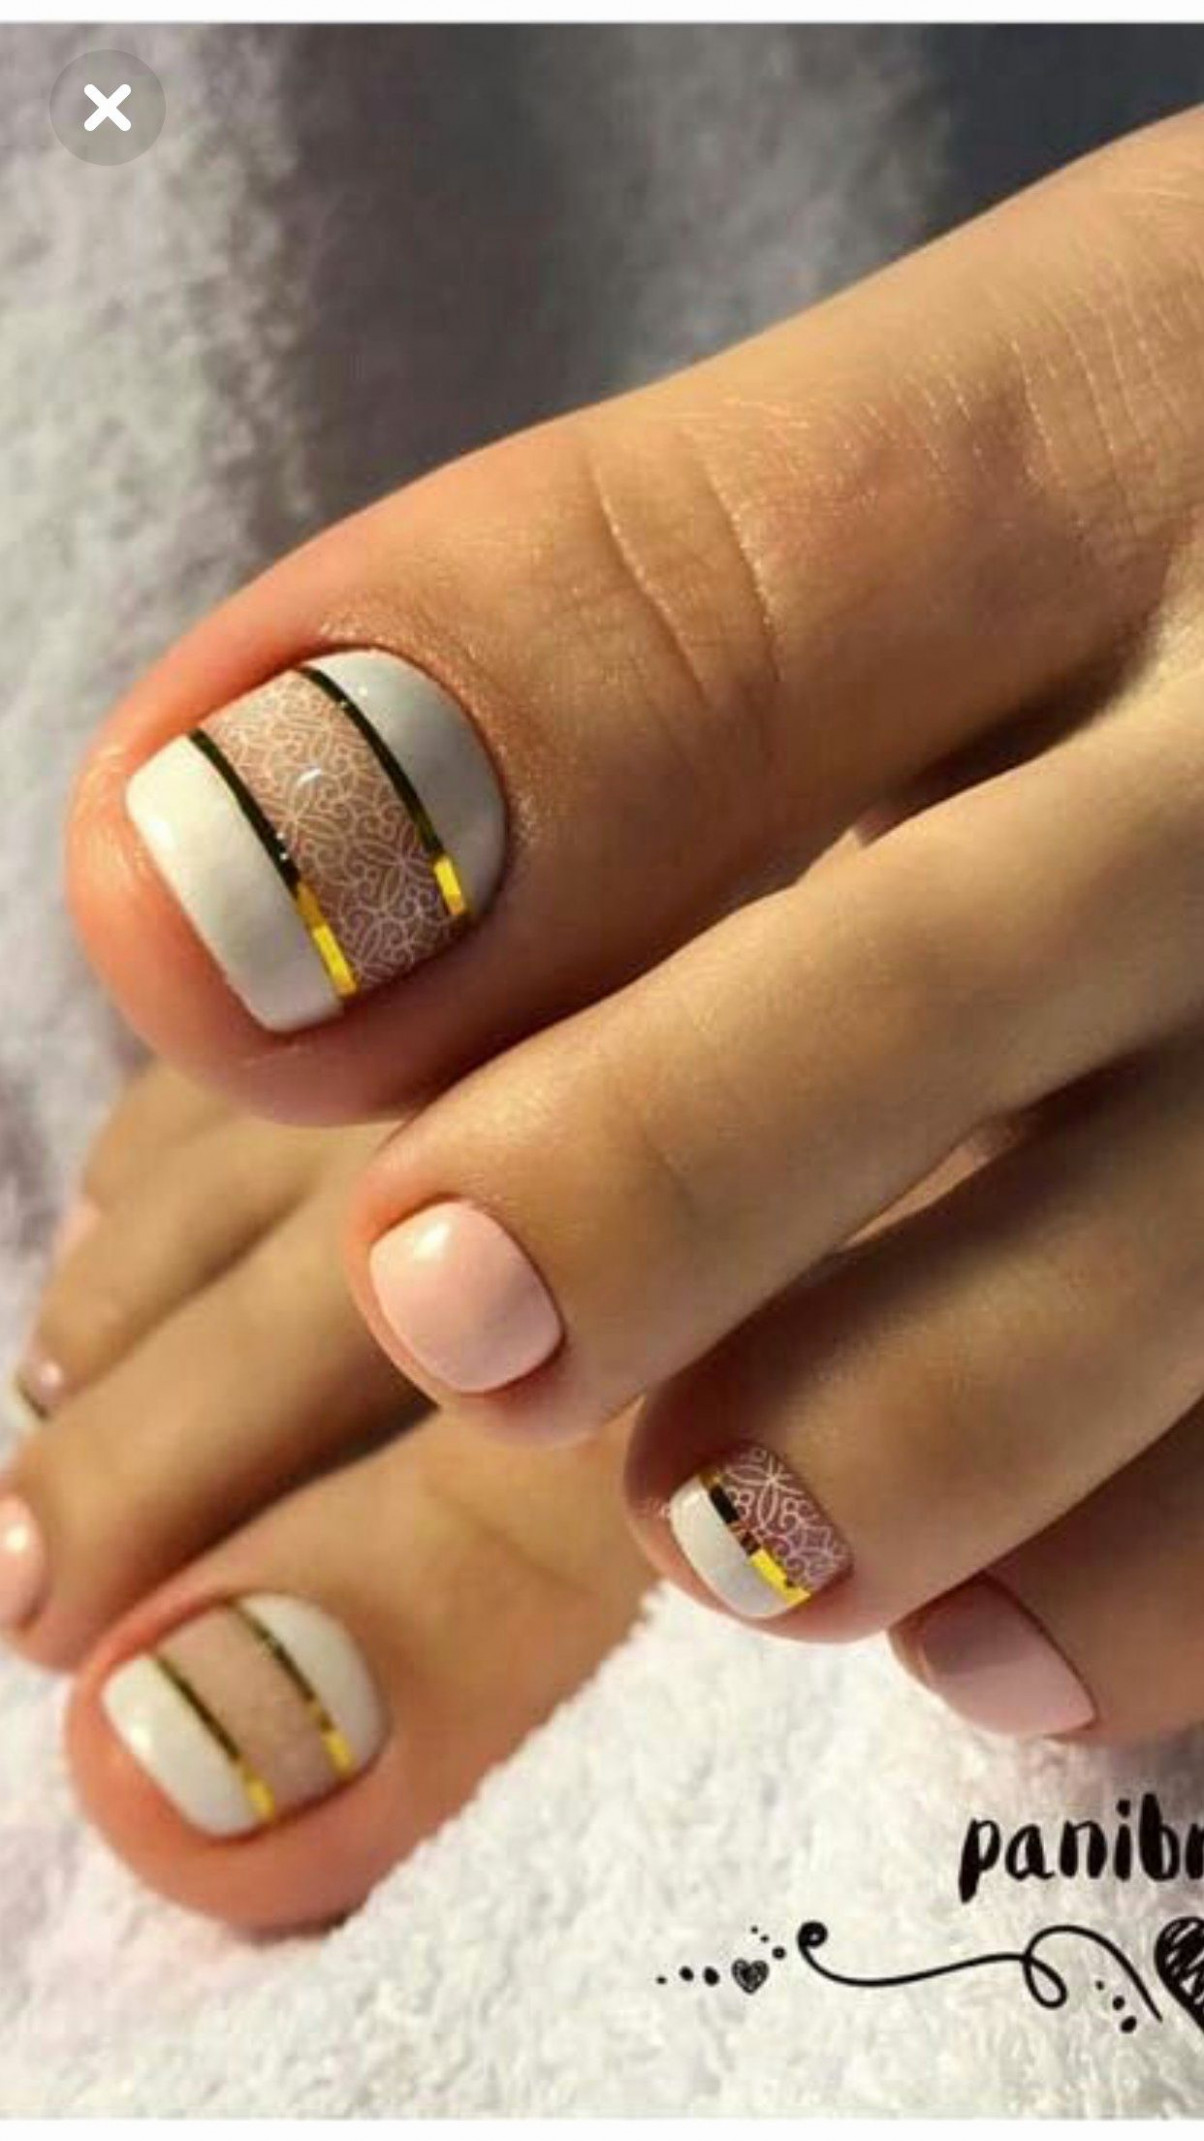 10 Best Of Nail Designs for toes - Gel toe Nail Designs Beautiful